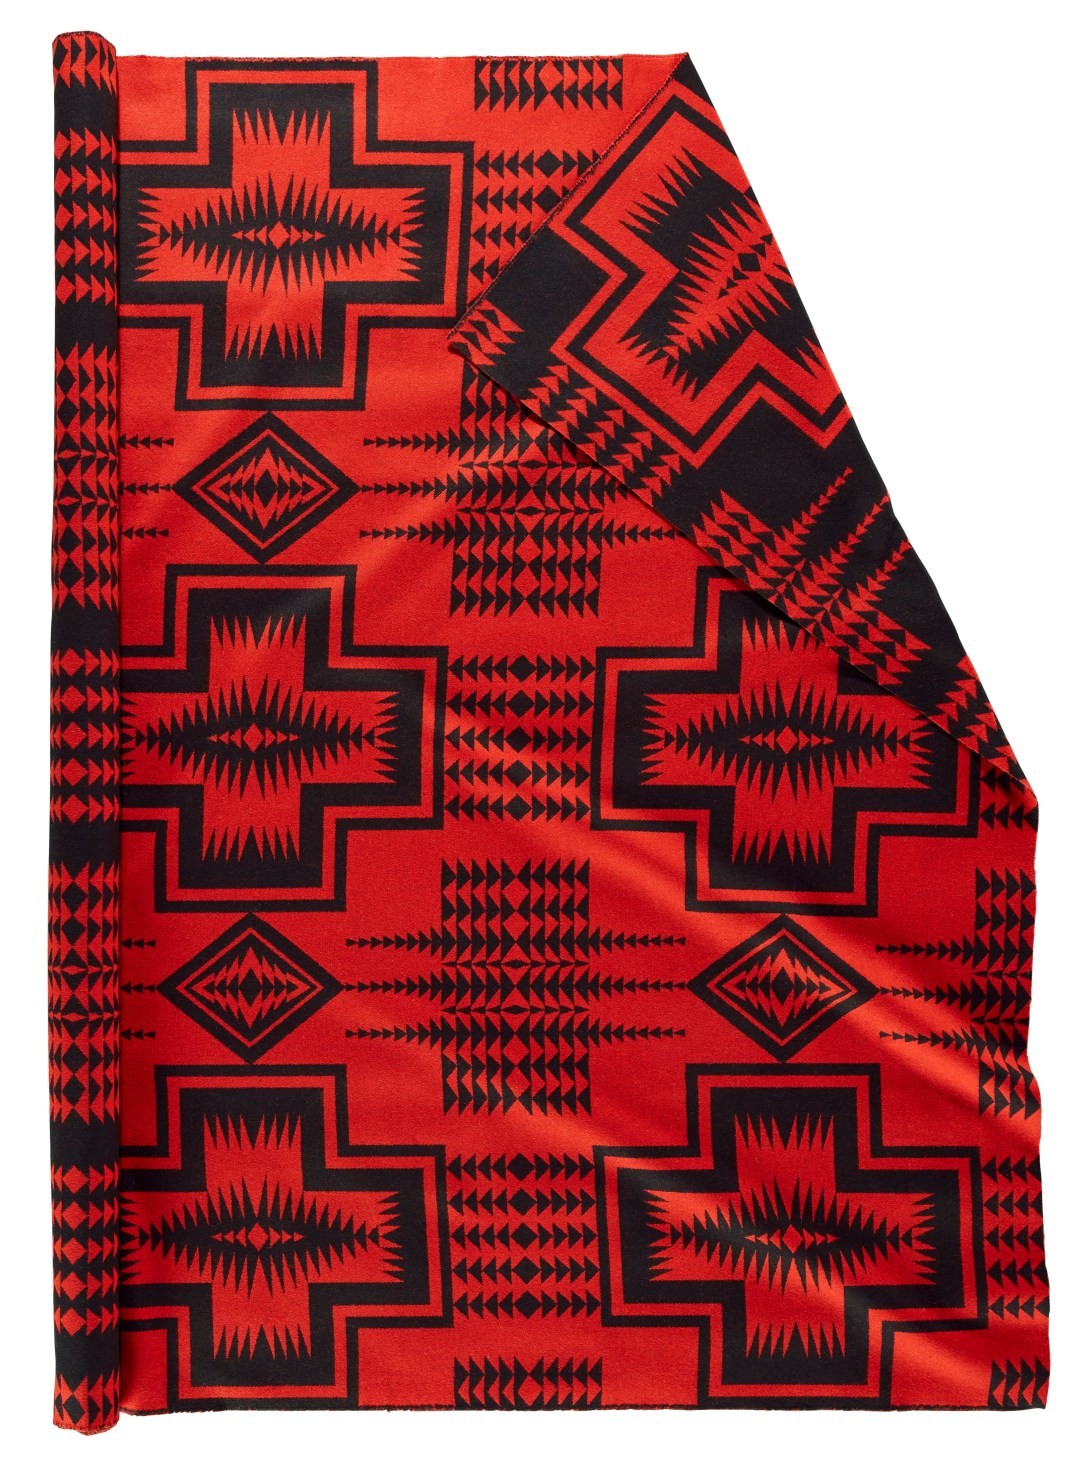 A roll of Pendleton wool fabric in Walking Rock, red, which is a bold red backgrowund with a pattern in black of crosses and chains of arrows.